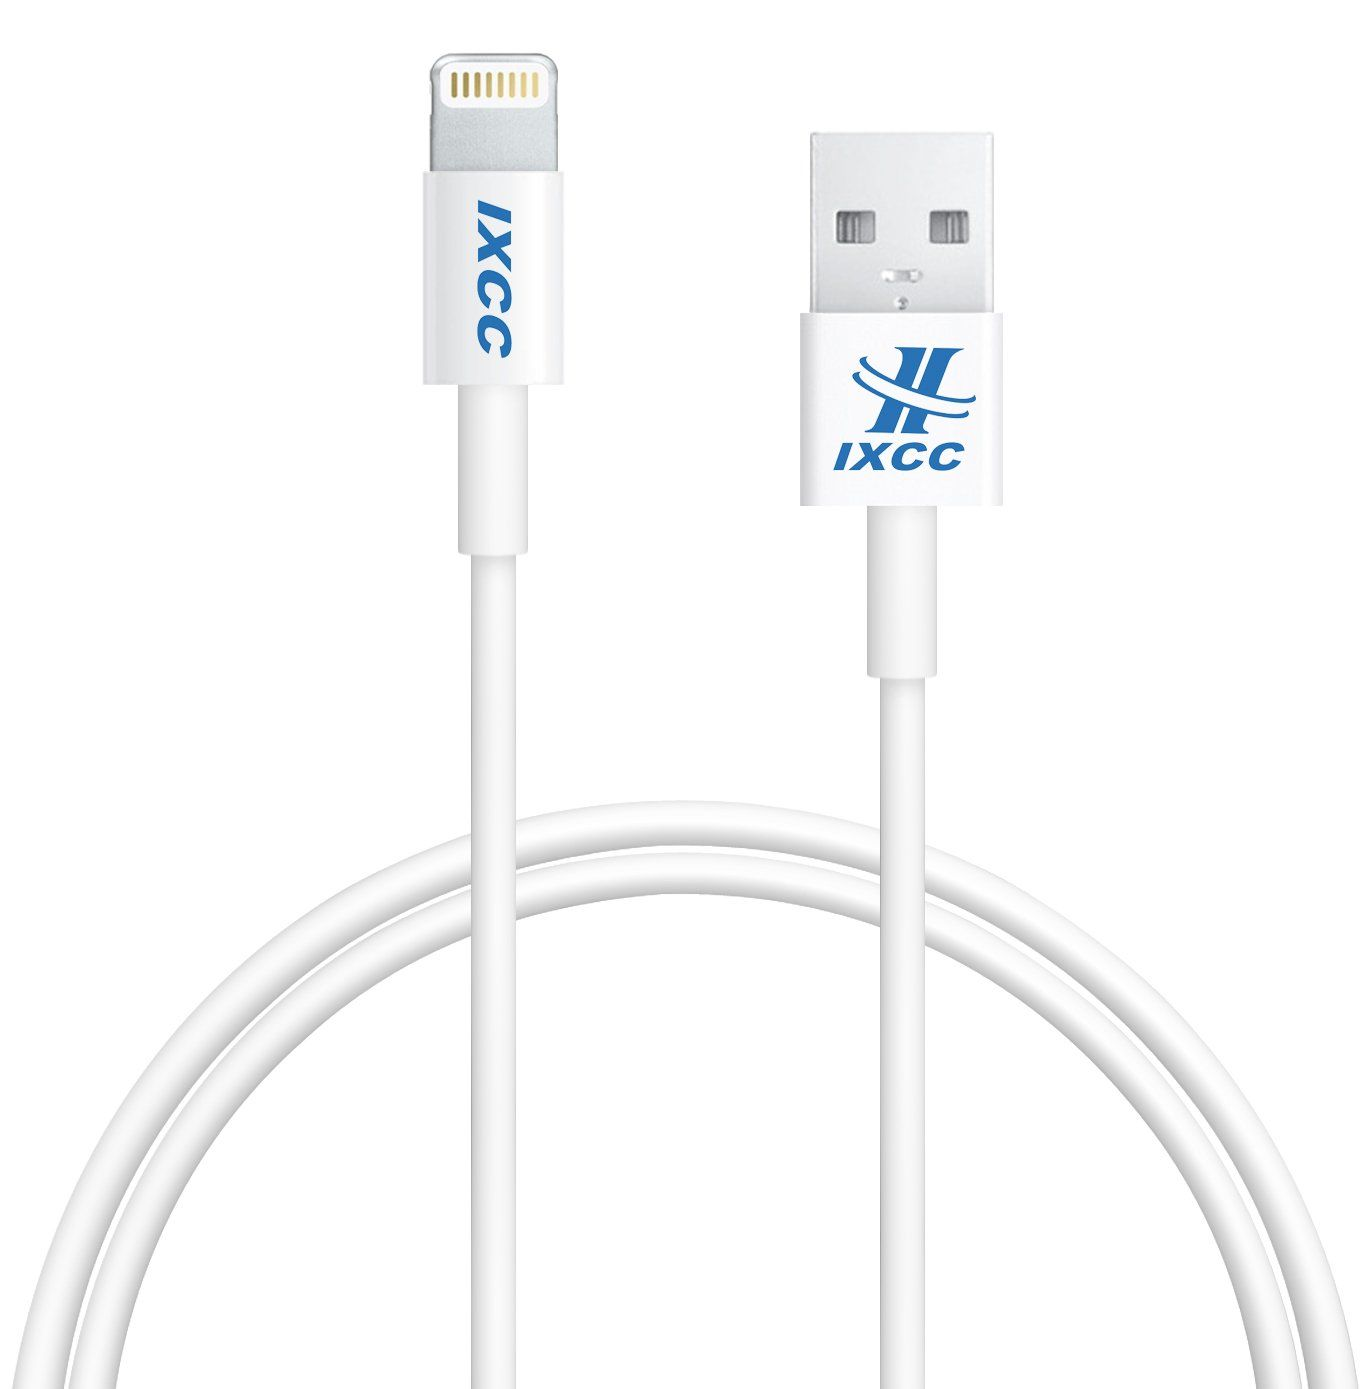 Apple Mfi Certified Ixcc Lightning Cable 3ft Three